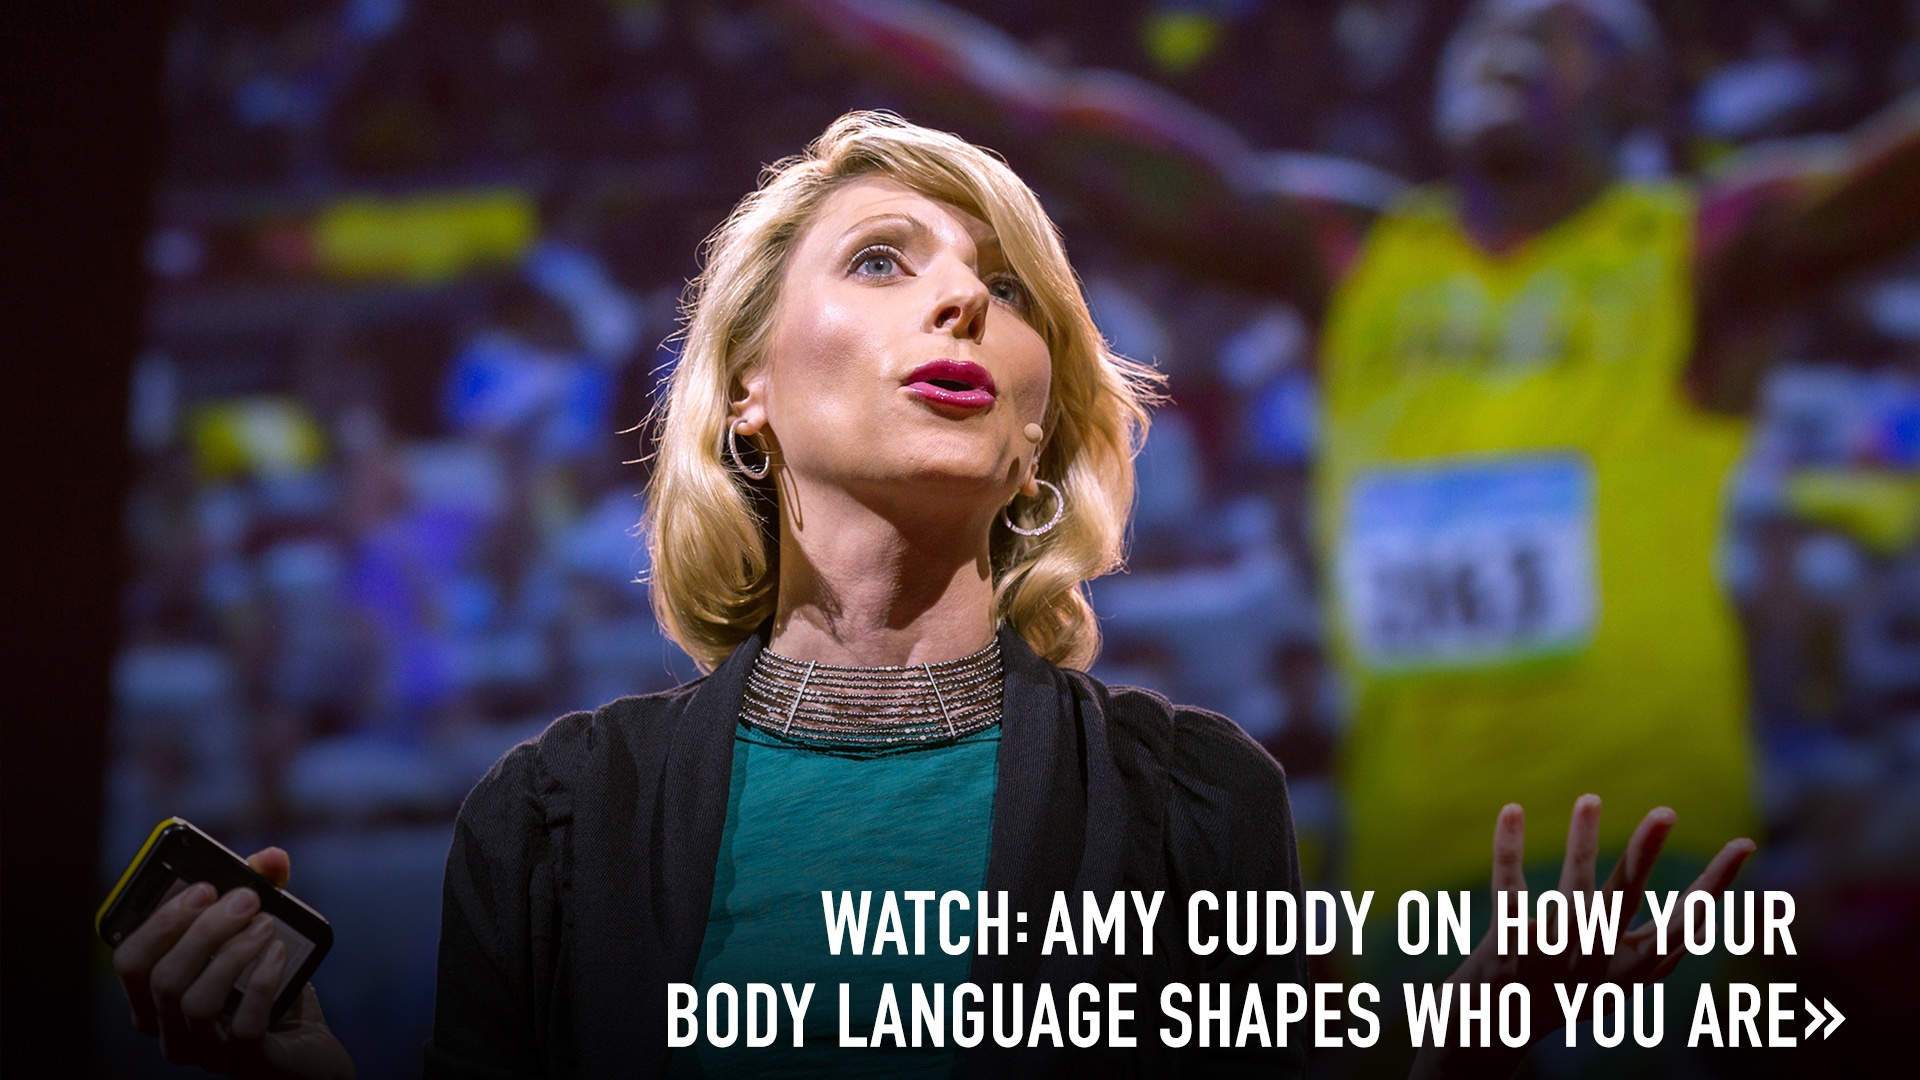 Amy_Cuddy_linkable_images